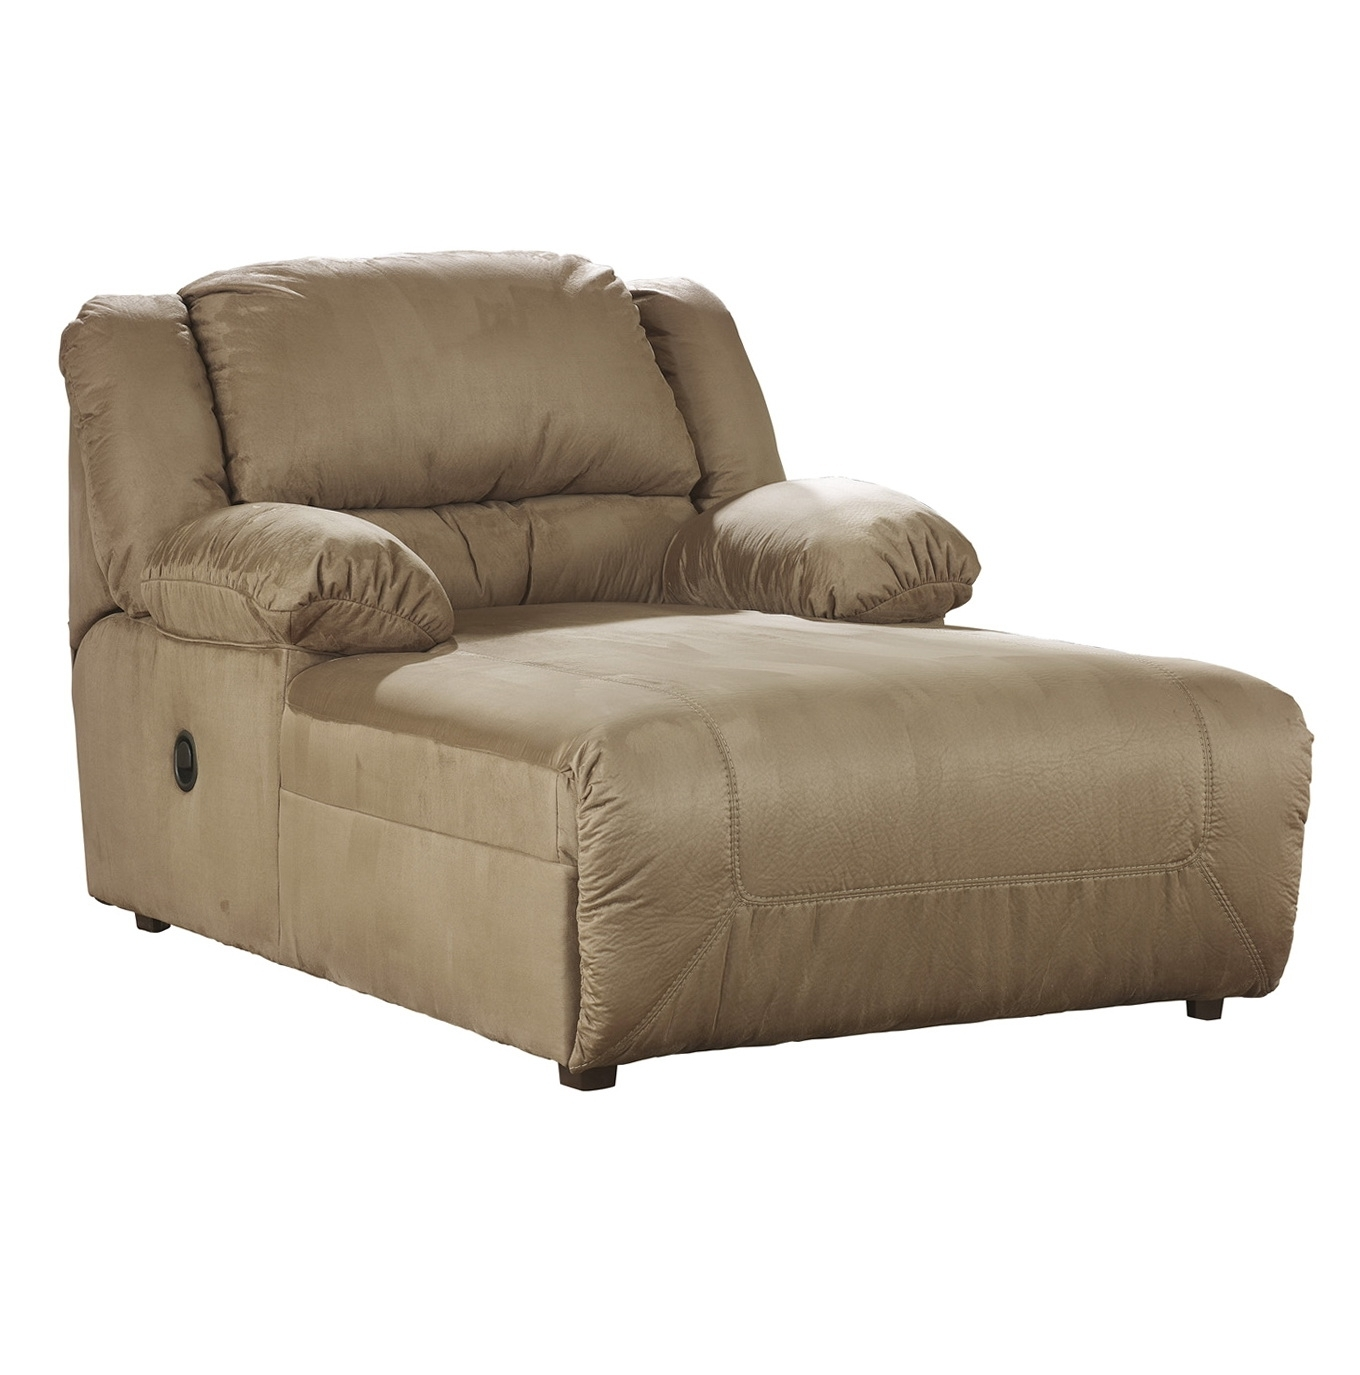 Ashley Furniture Chaise Lounge Couch (View 15 of 15)